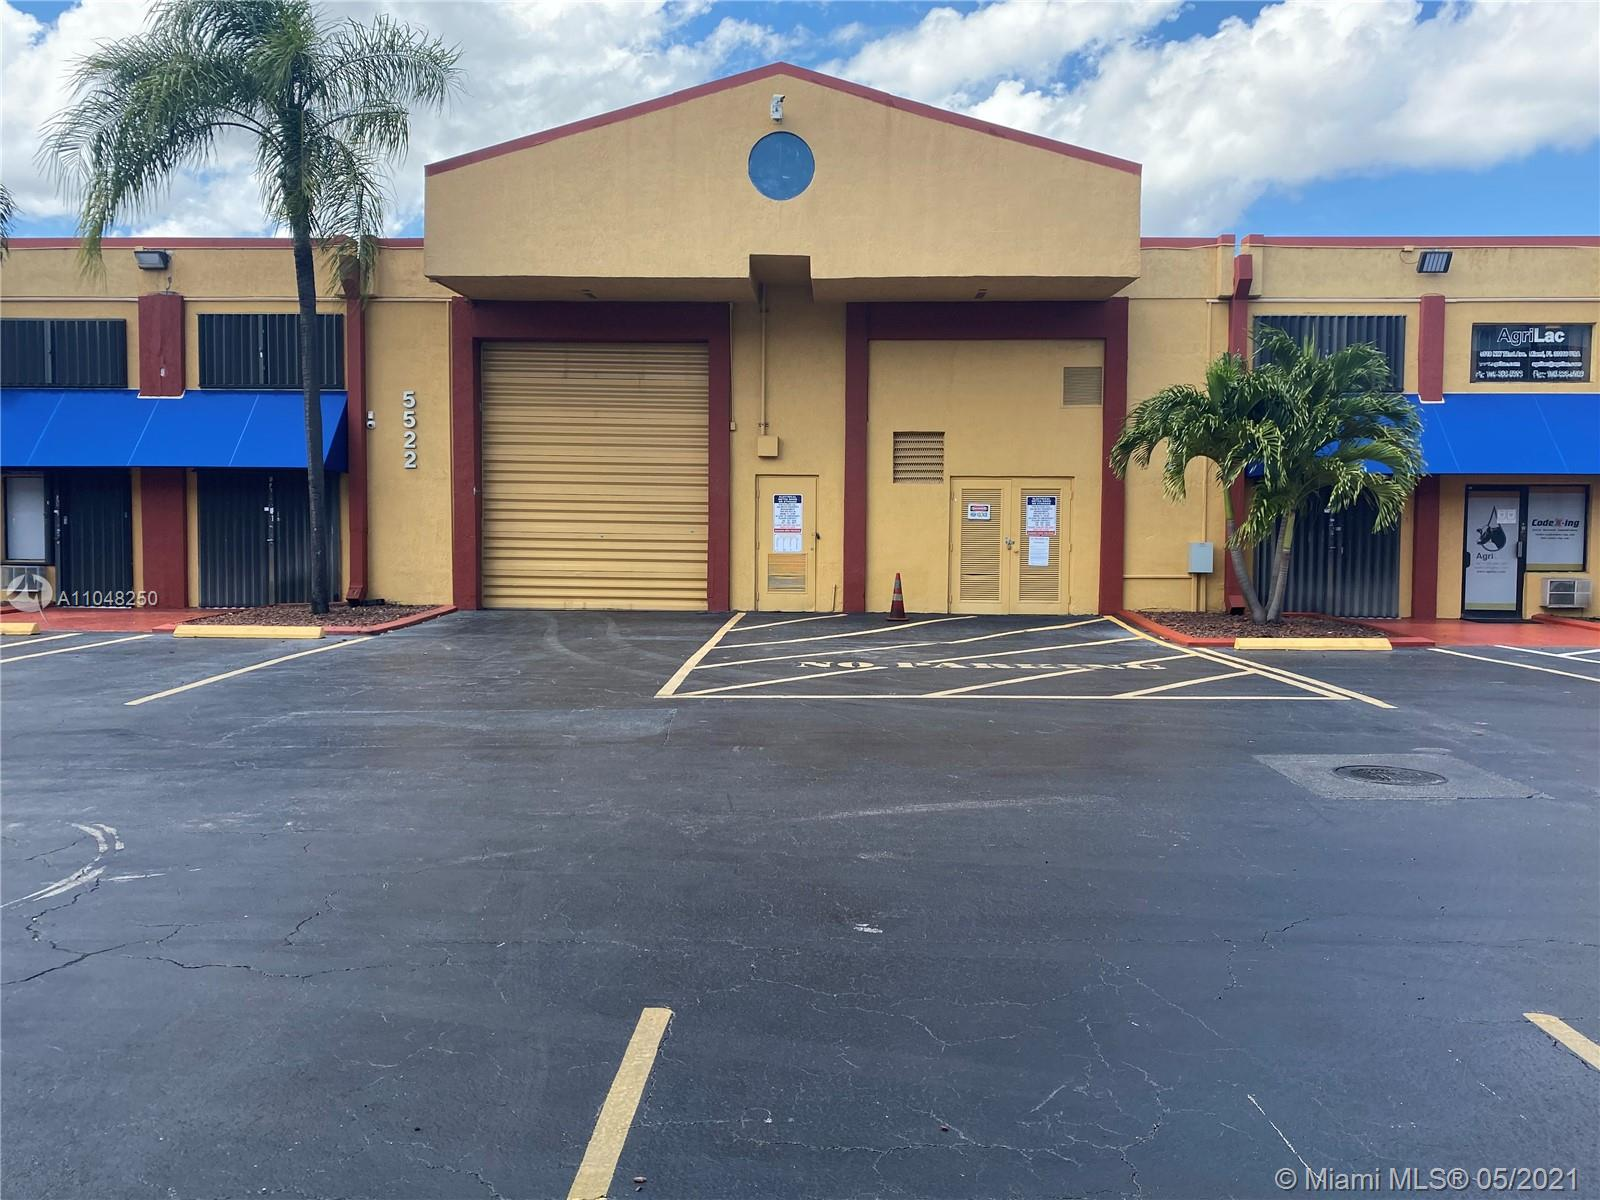 5522 NW 72nd Ave 5522, Miami, FL 33166